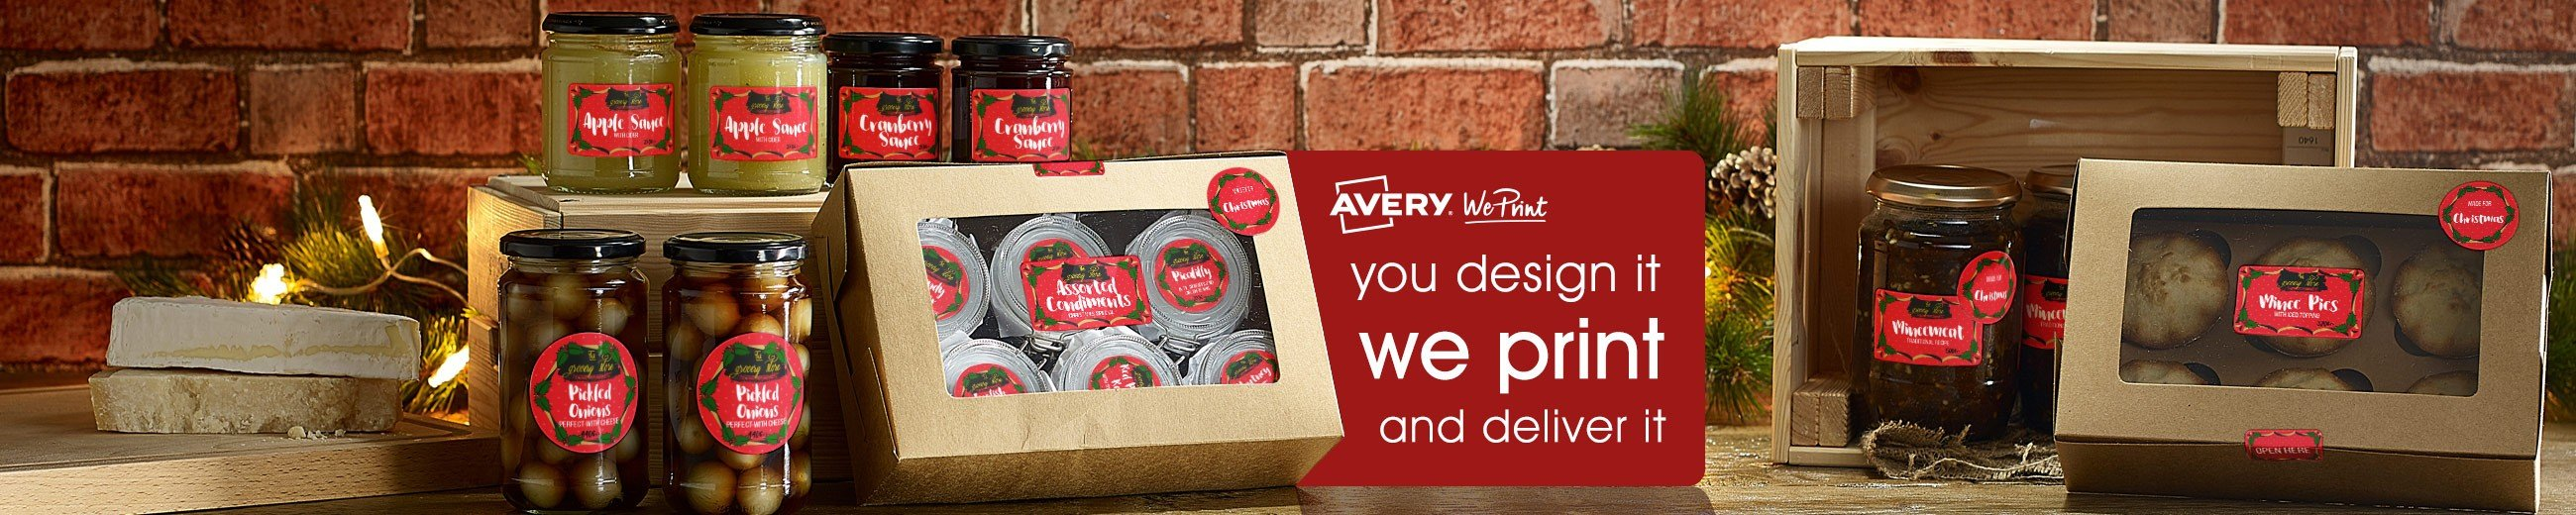 you design it, we print! Avery WePrint